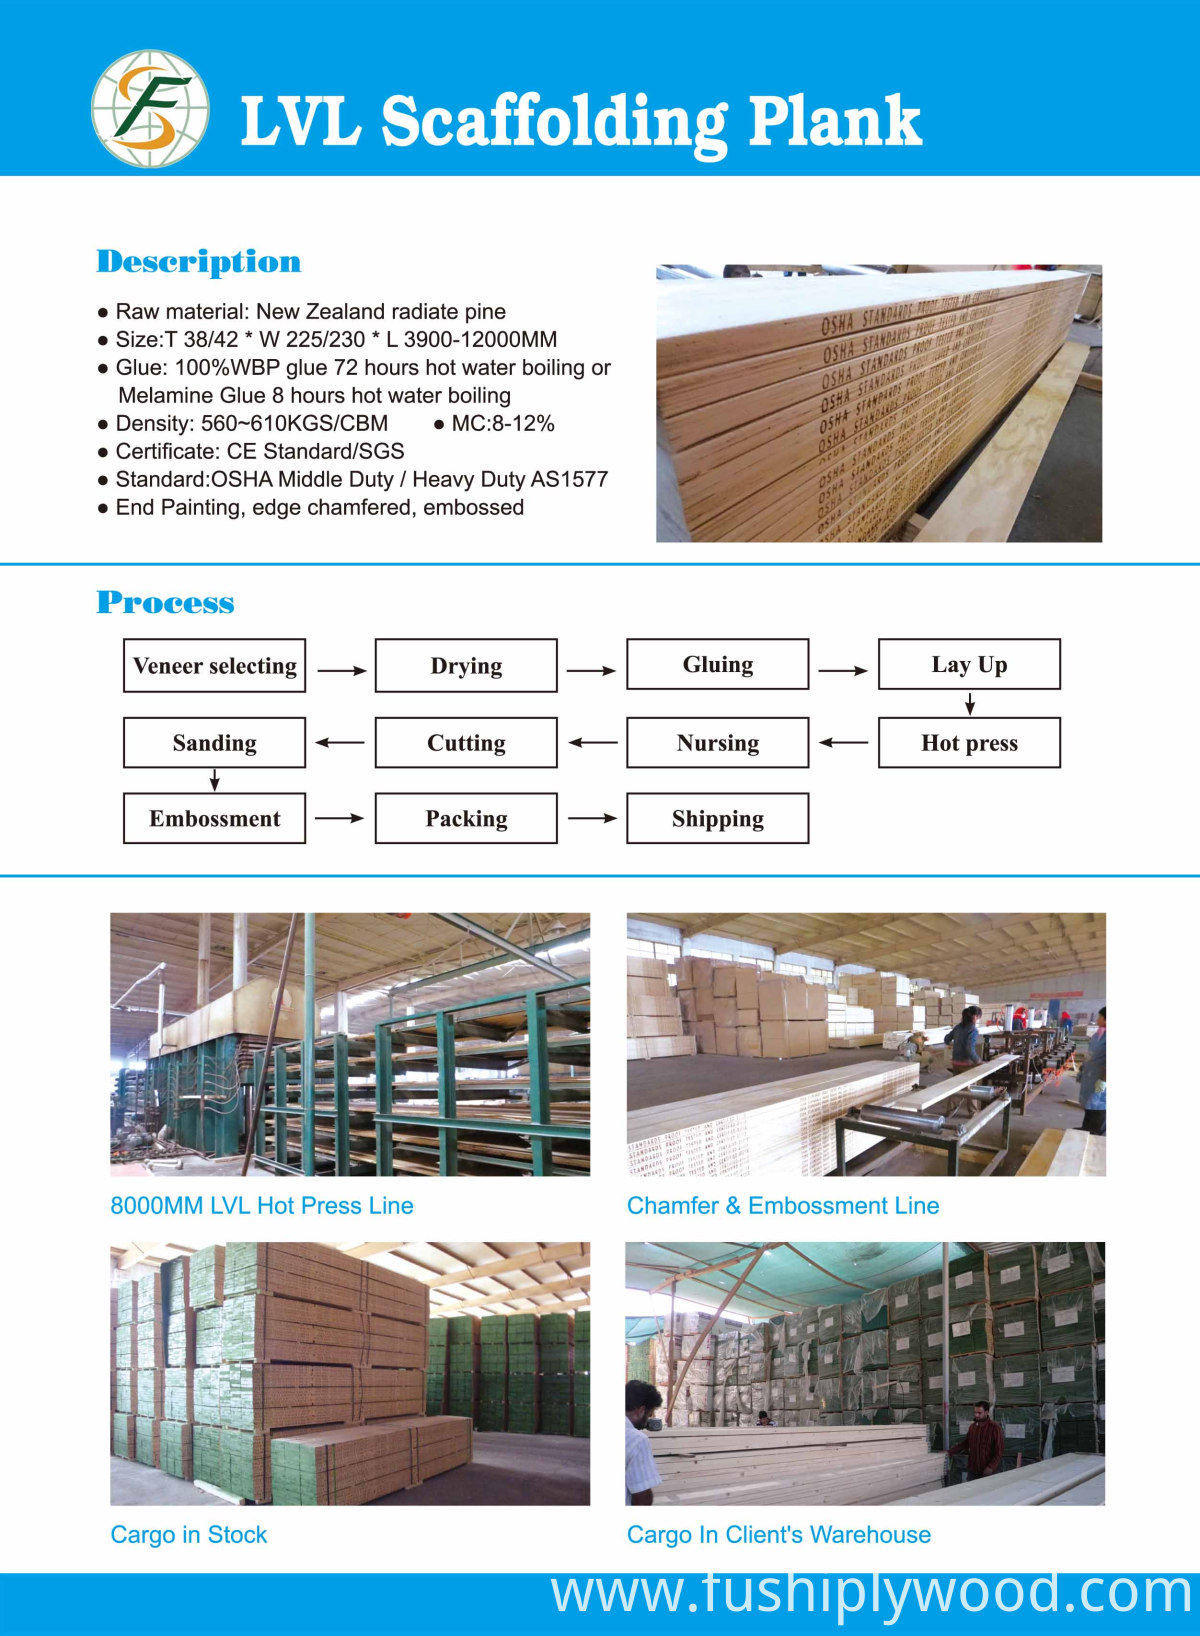 LVL scaffolding specifications